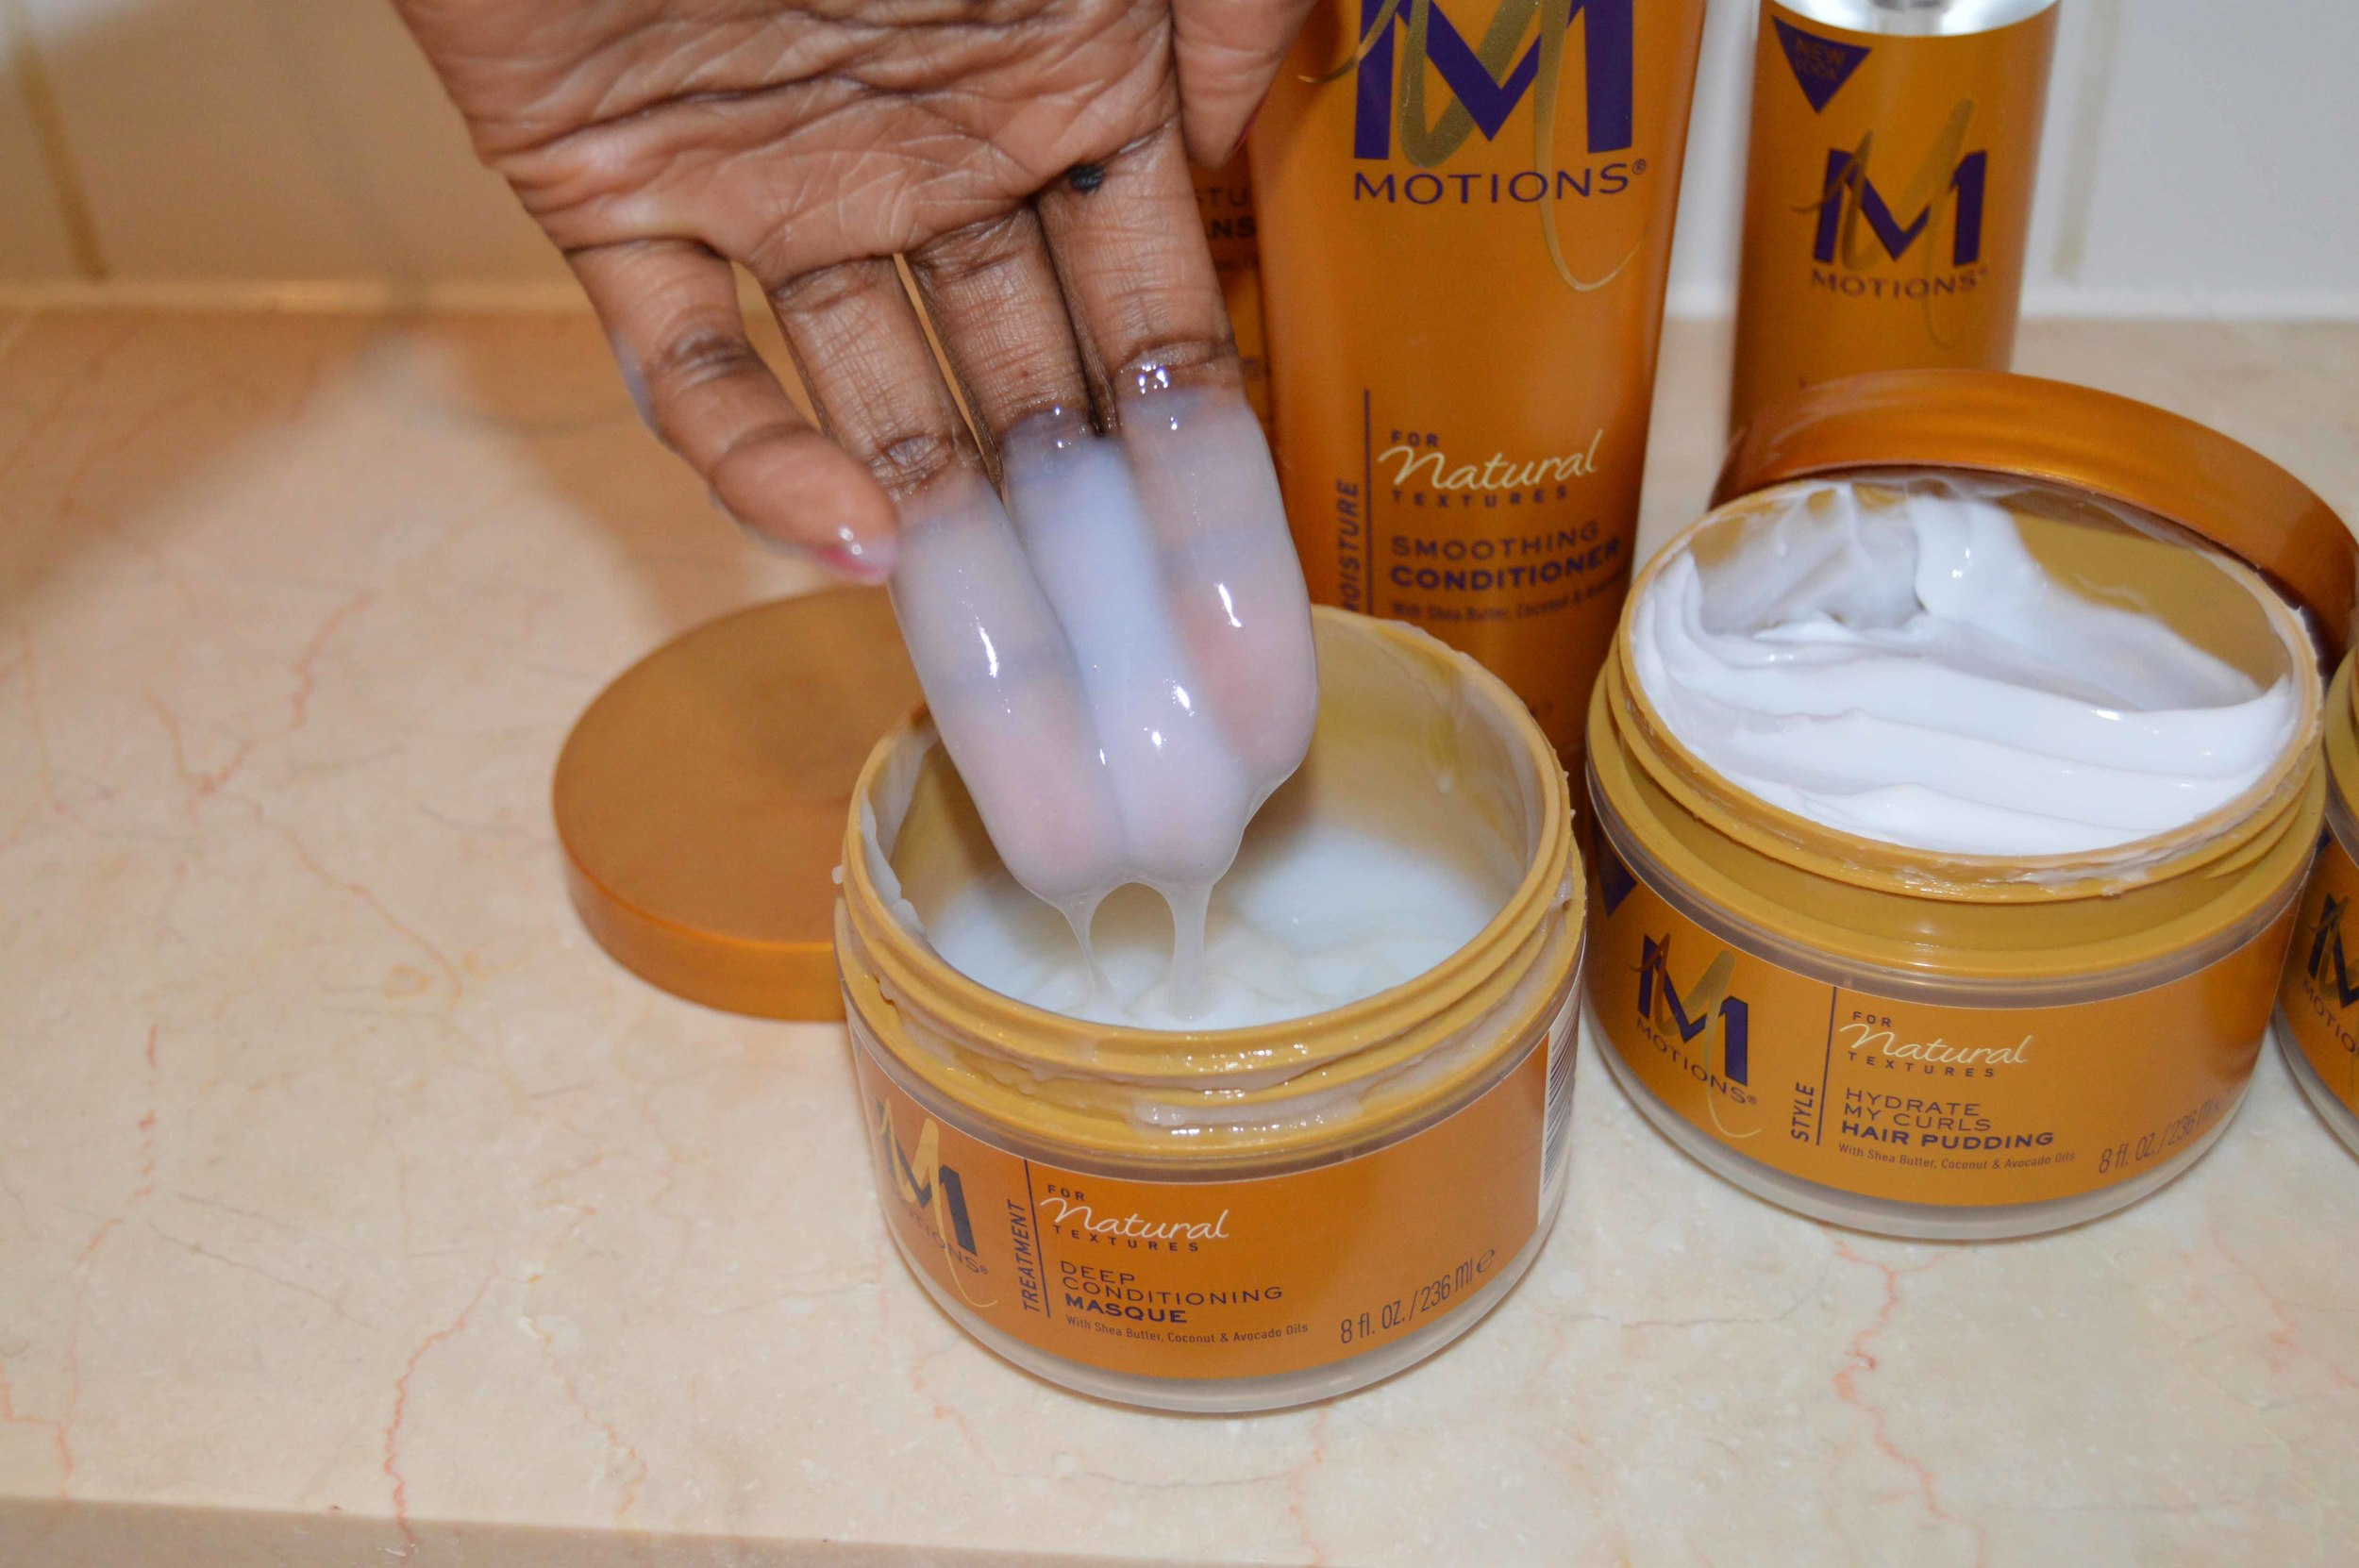 Motions Hair Masque